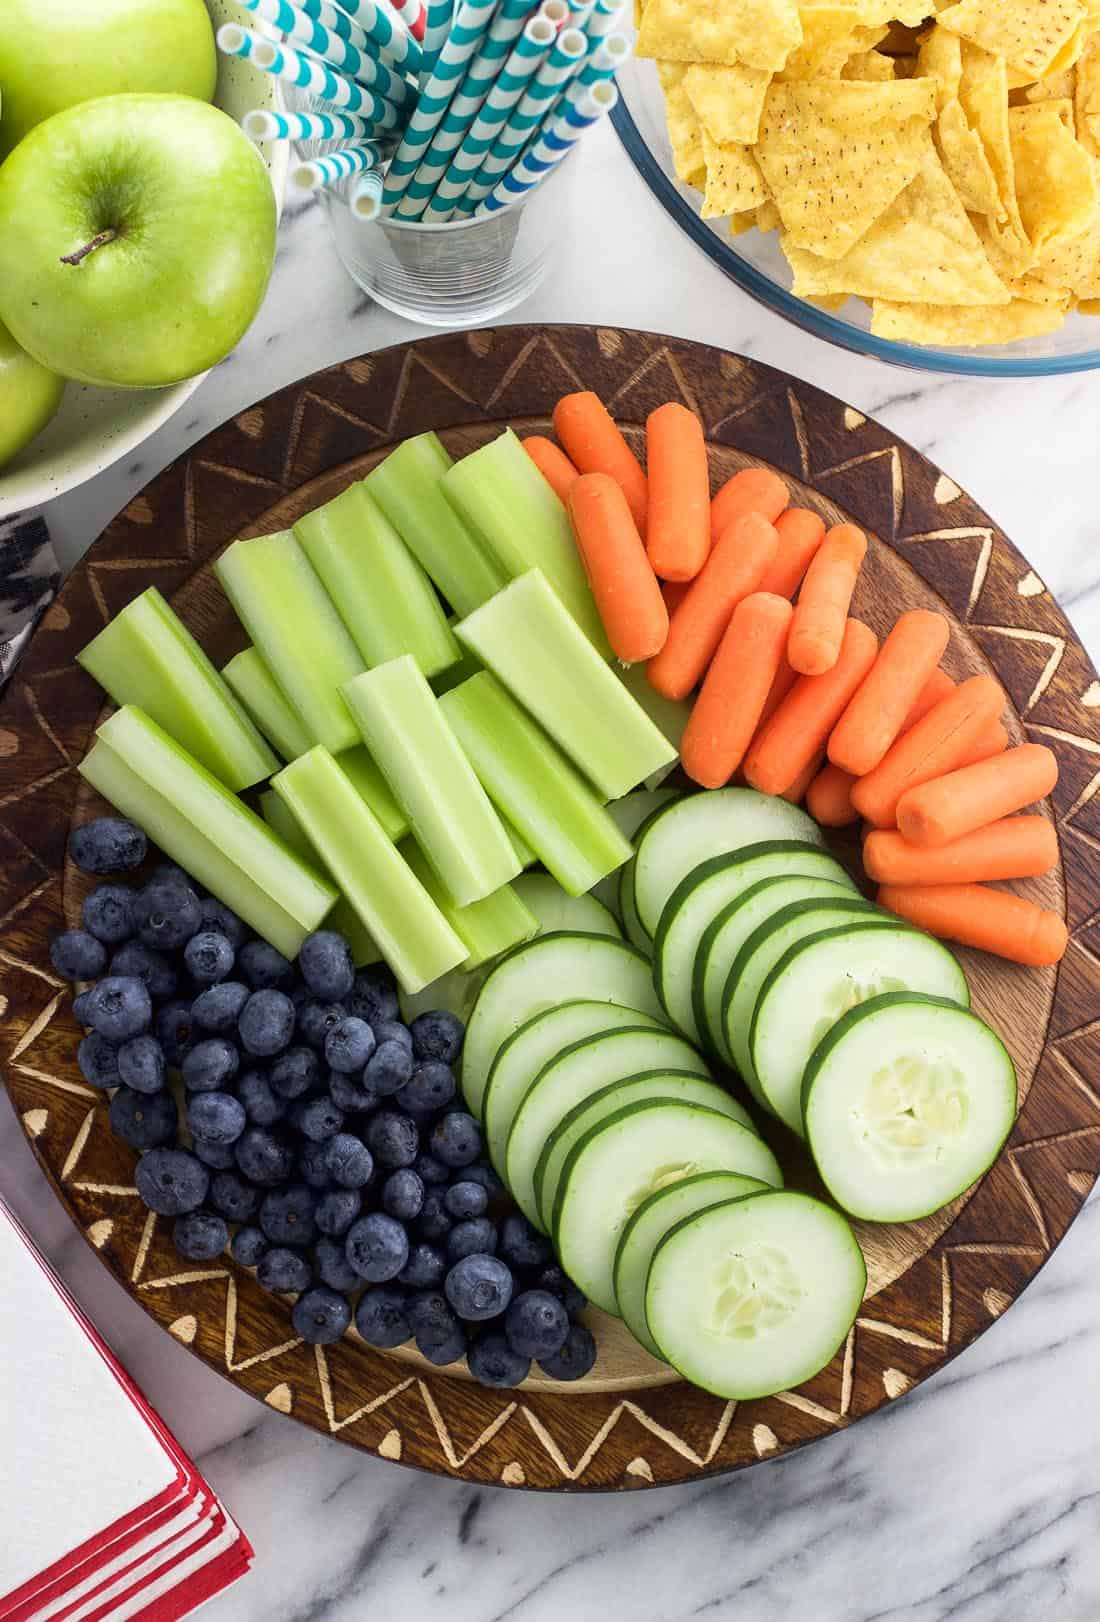 Sliced vegetables and fruit as part of a party spread.